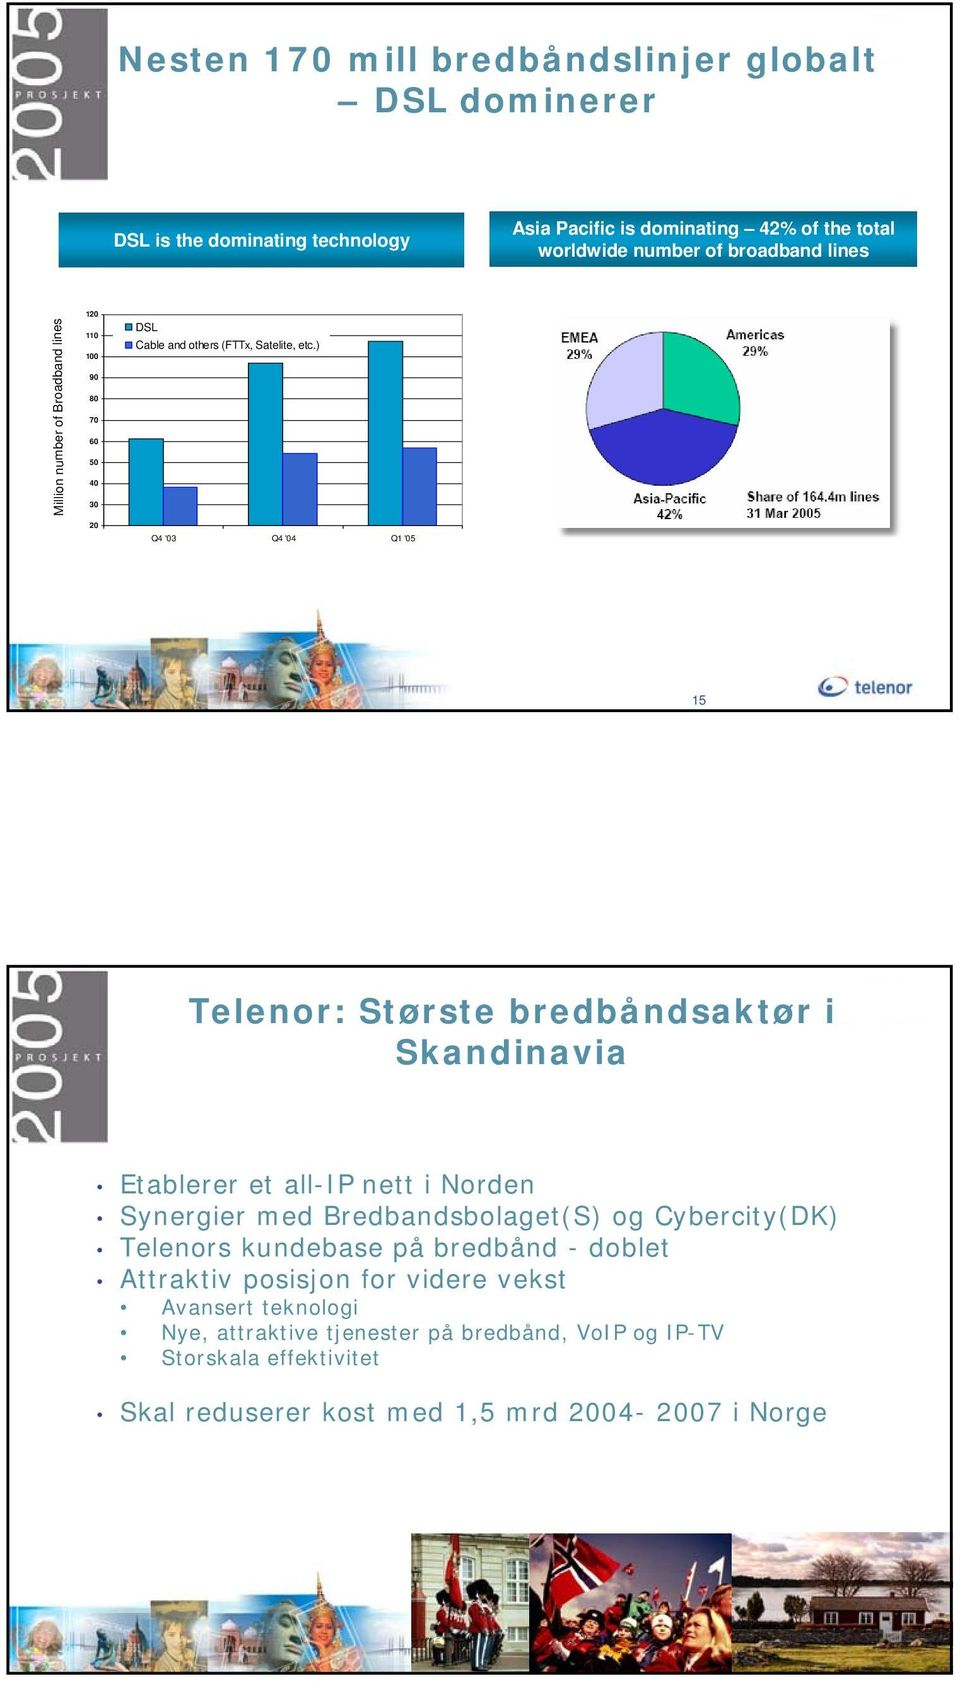 ) Million number of Broadband lines 90 80 70 60 50 40 30 20 Q4 '03 Q4 '04 Q1 '05 15 Telenor: Største bredbåndsaktør i Skandinavia Etablerer et all-ip nett i Norden